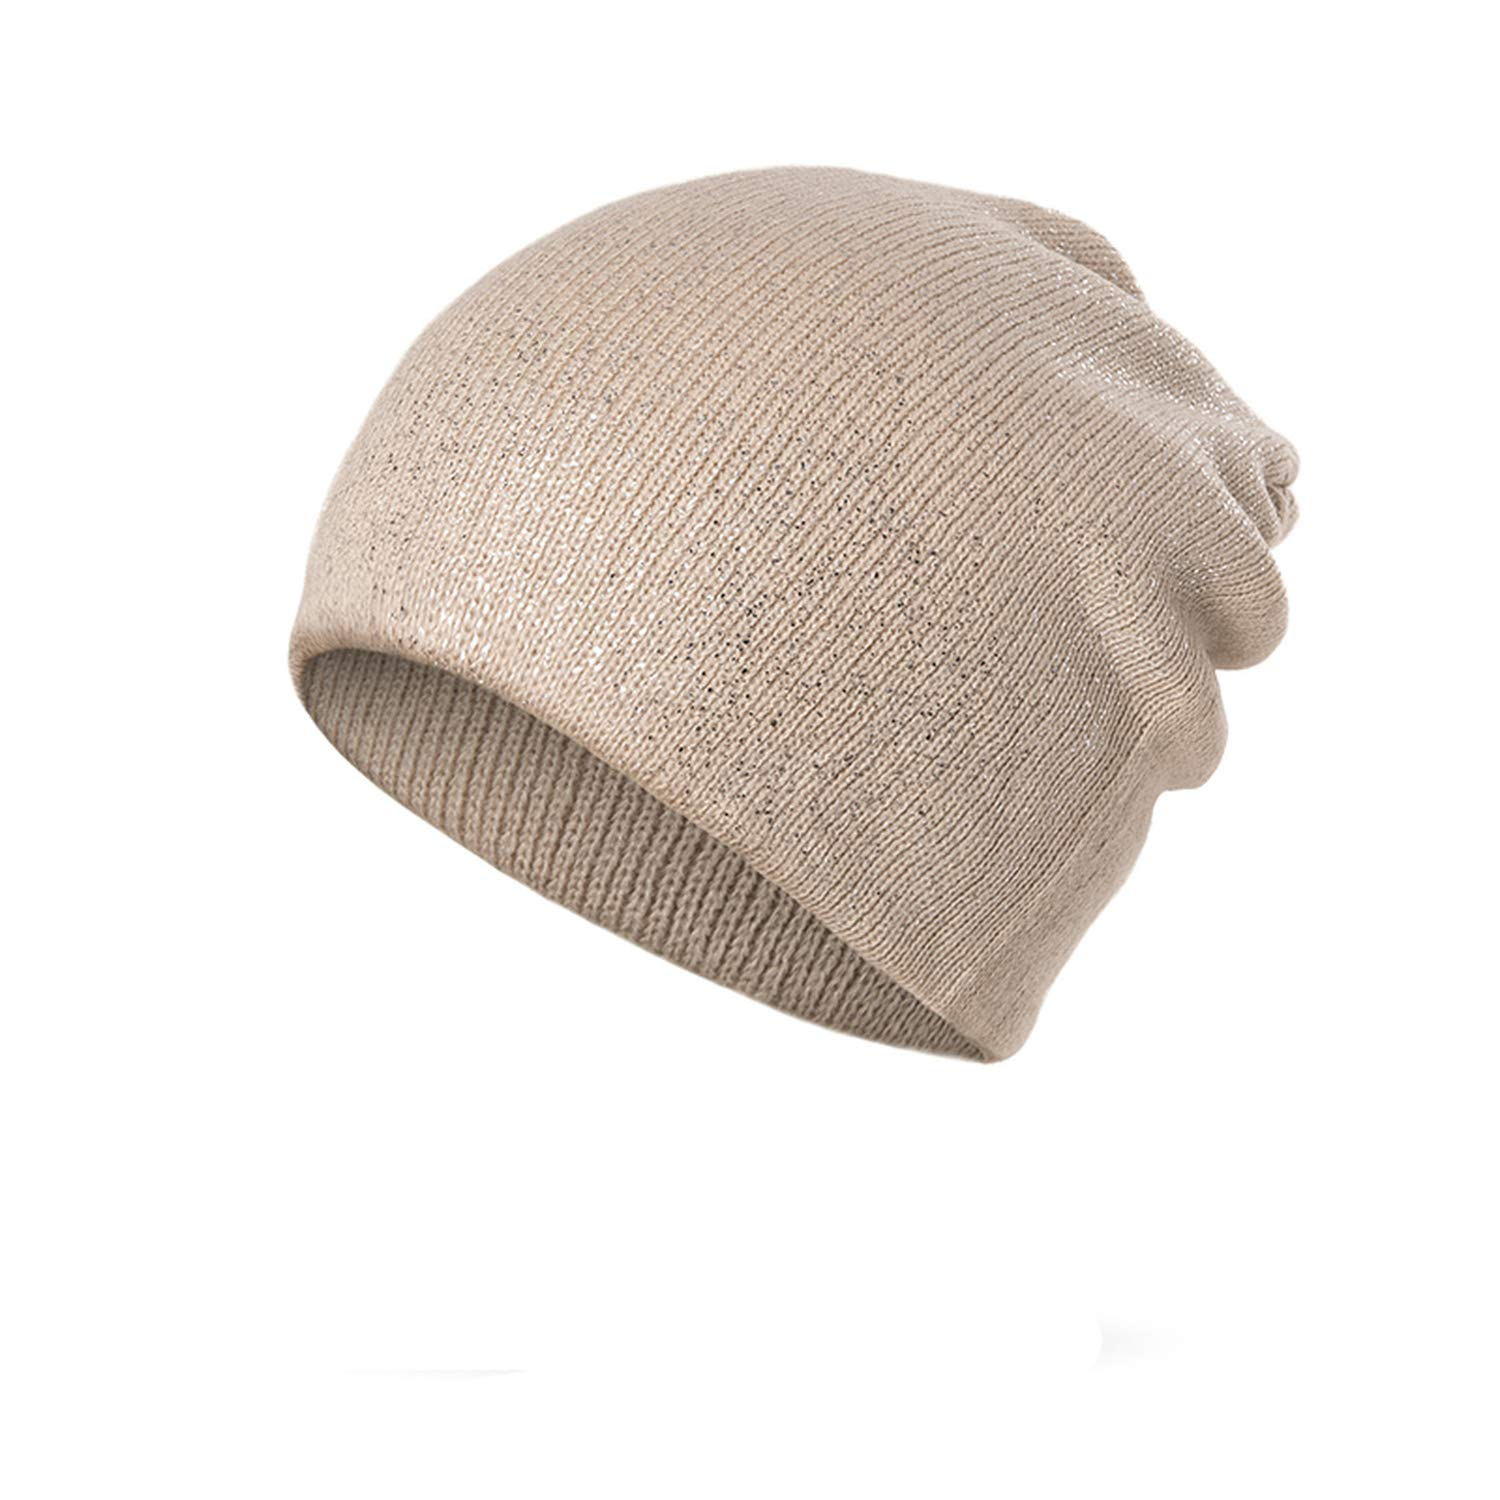 Ron Kite Skullies Beanies Knitted Winter Hat Shinning Beanies Girls Skullies Solid Color Hats